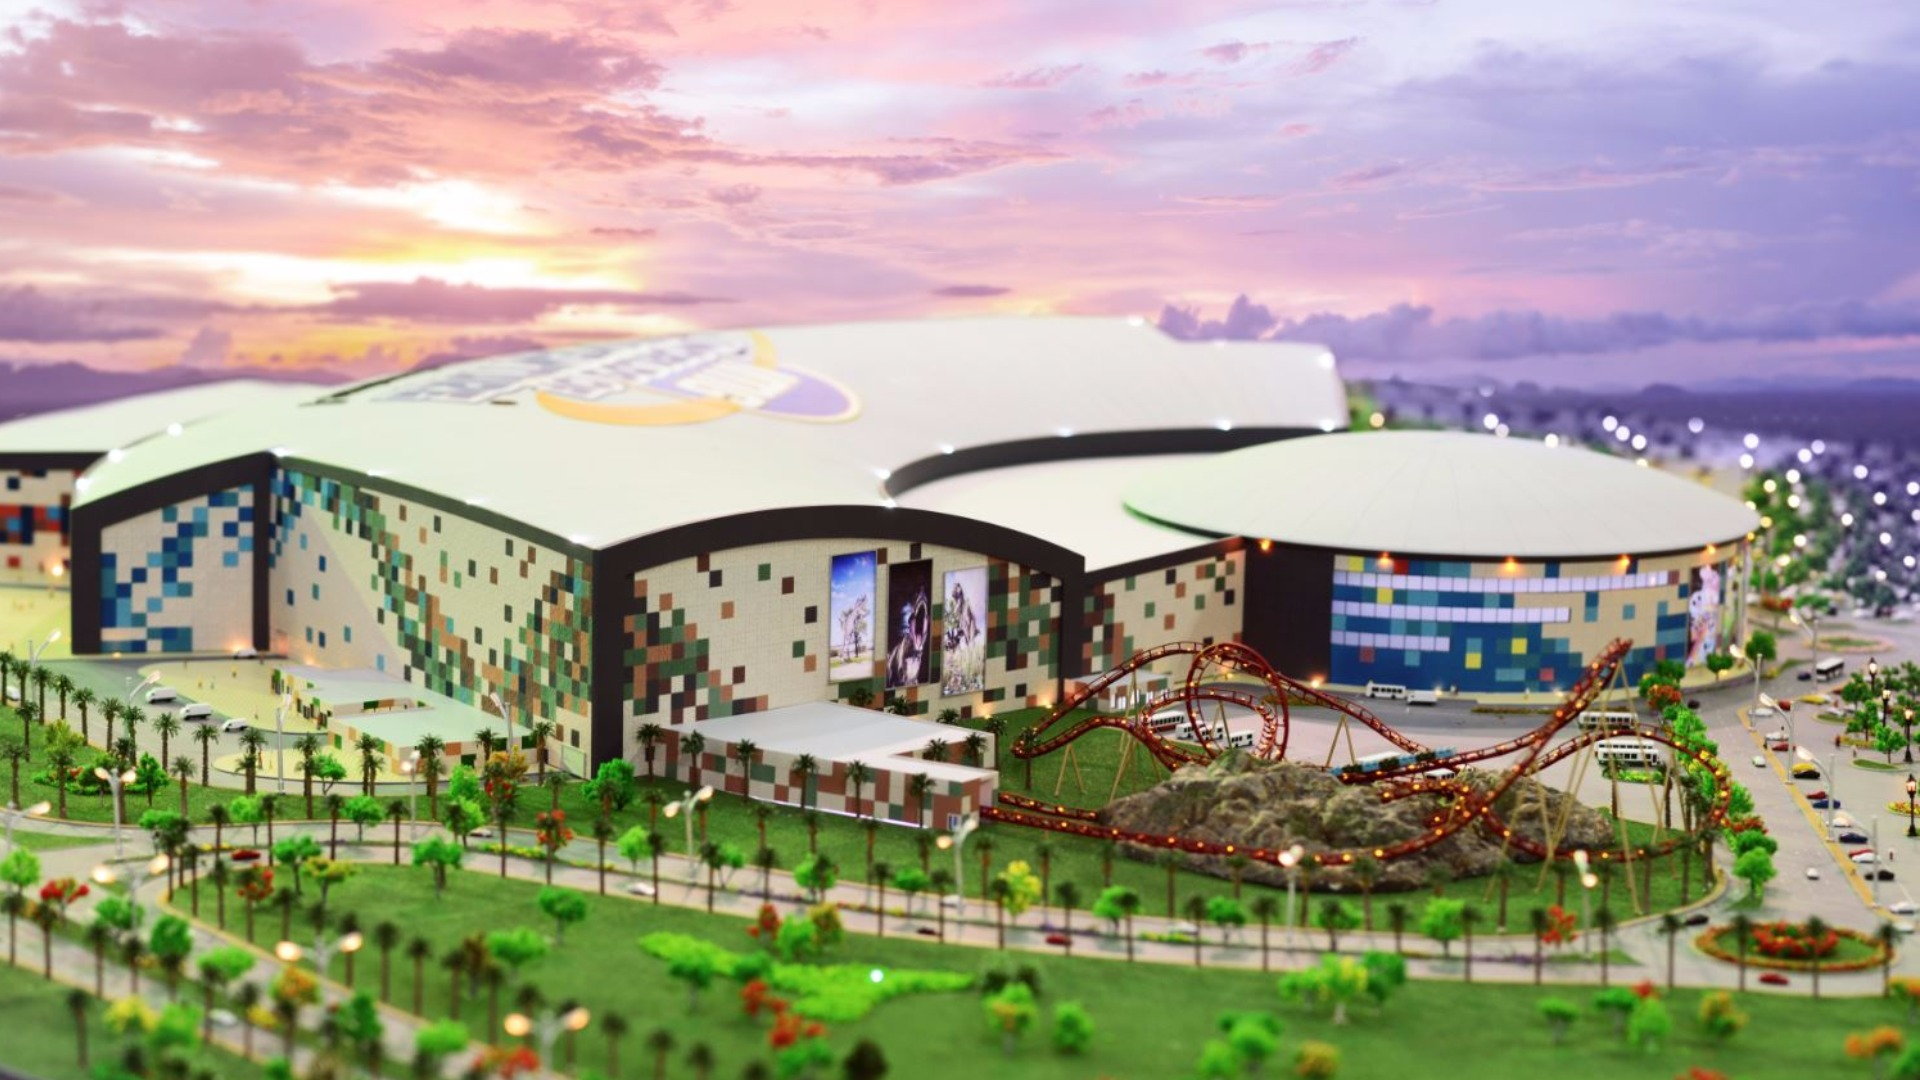 The Largest Indoor Amusement Park Was Opened In Dubai